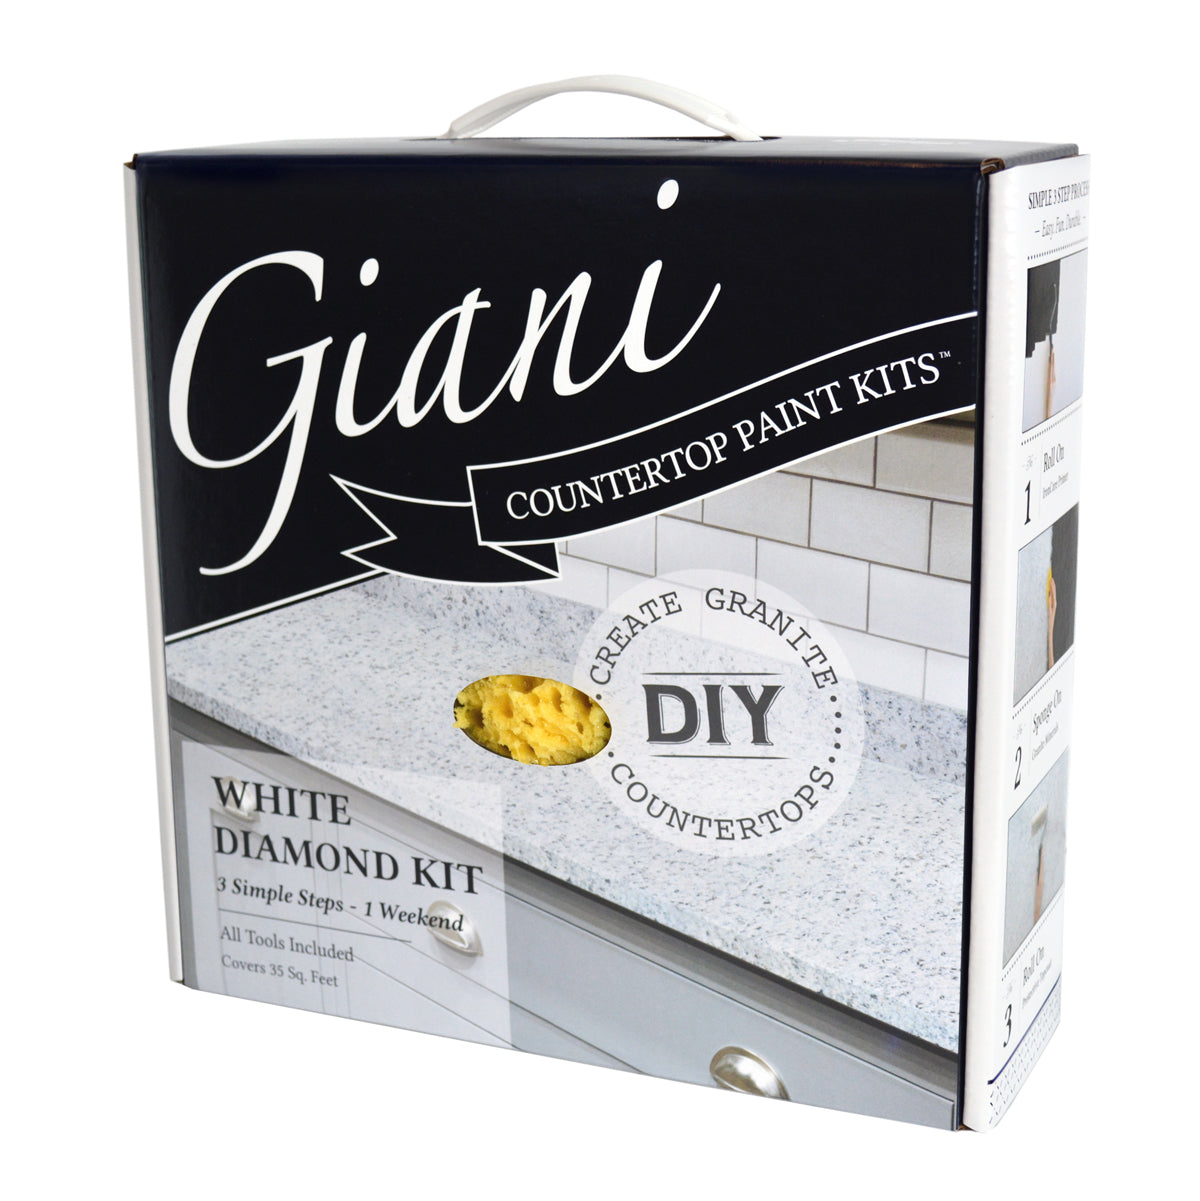 Giani Countertop Paint